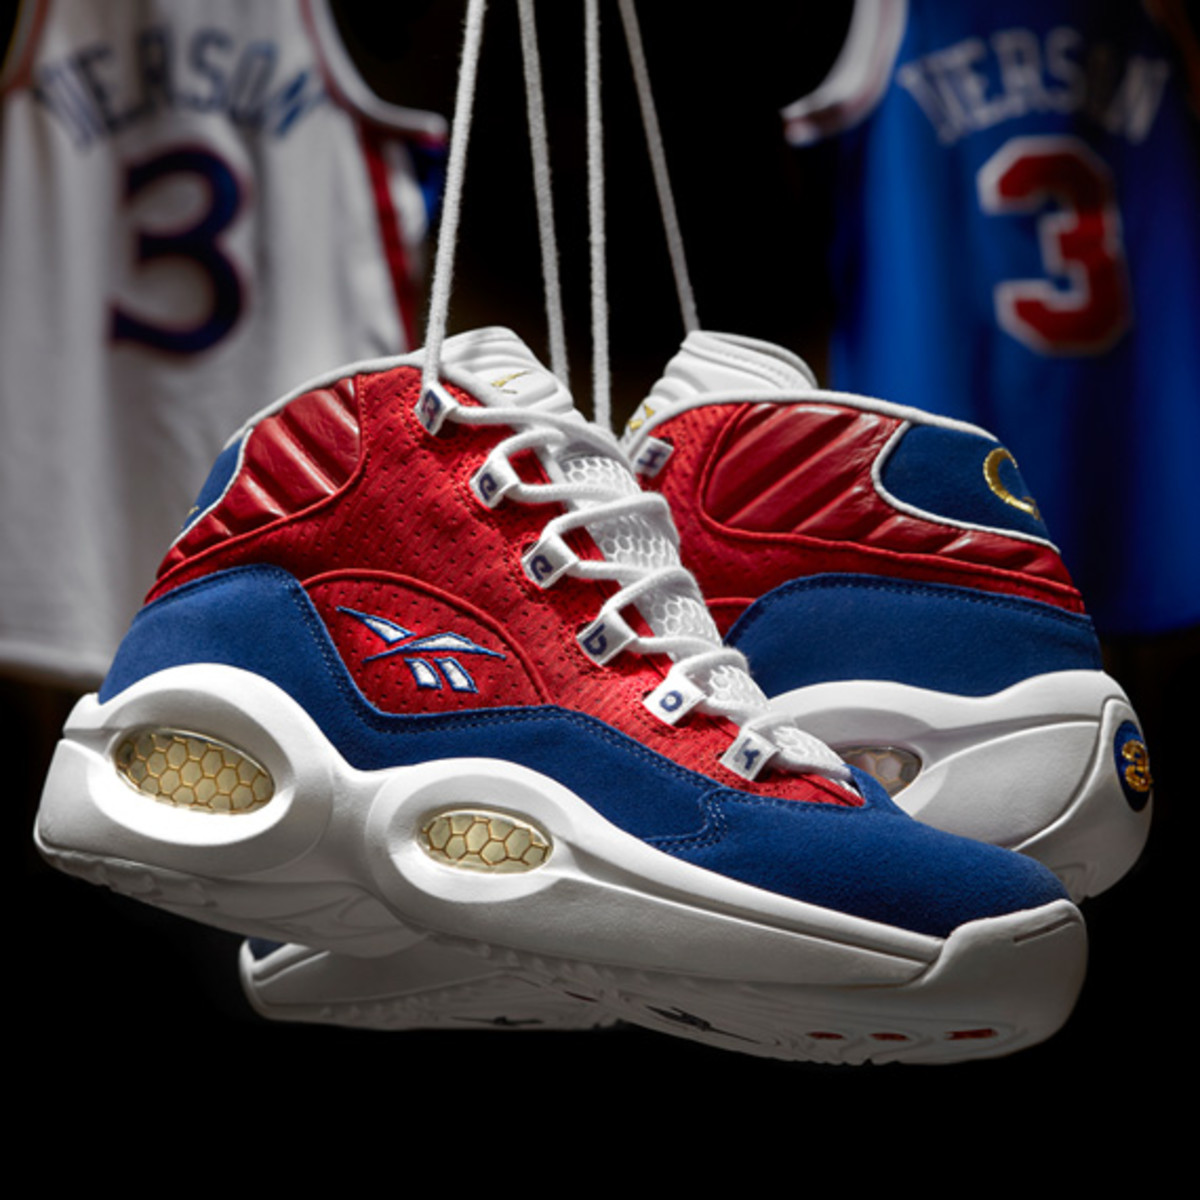 a description of reebok shoe commercial featuring basketball star allen iverson All star game (featuring allen iverson and  for very own shoe keep.